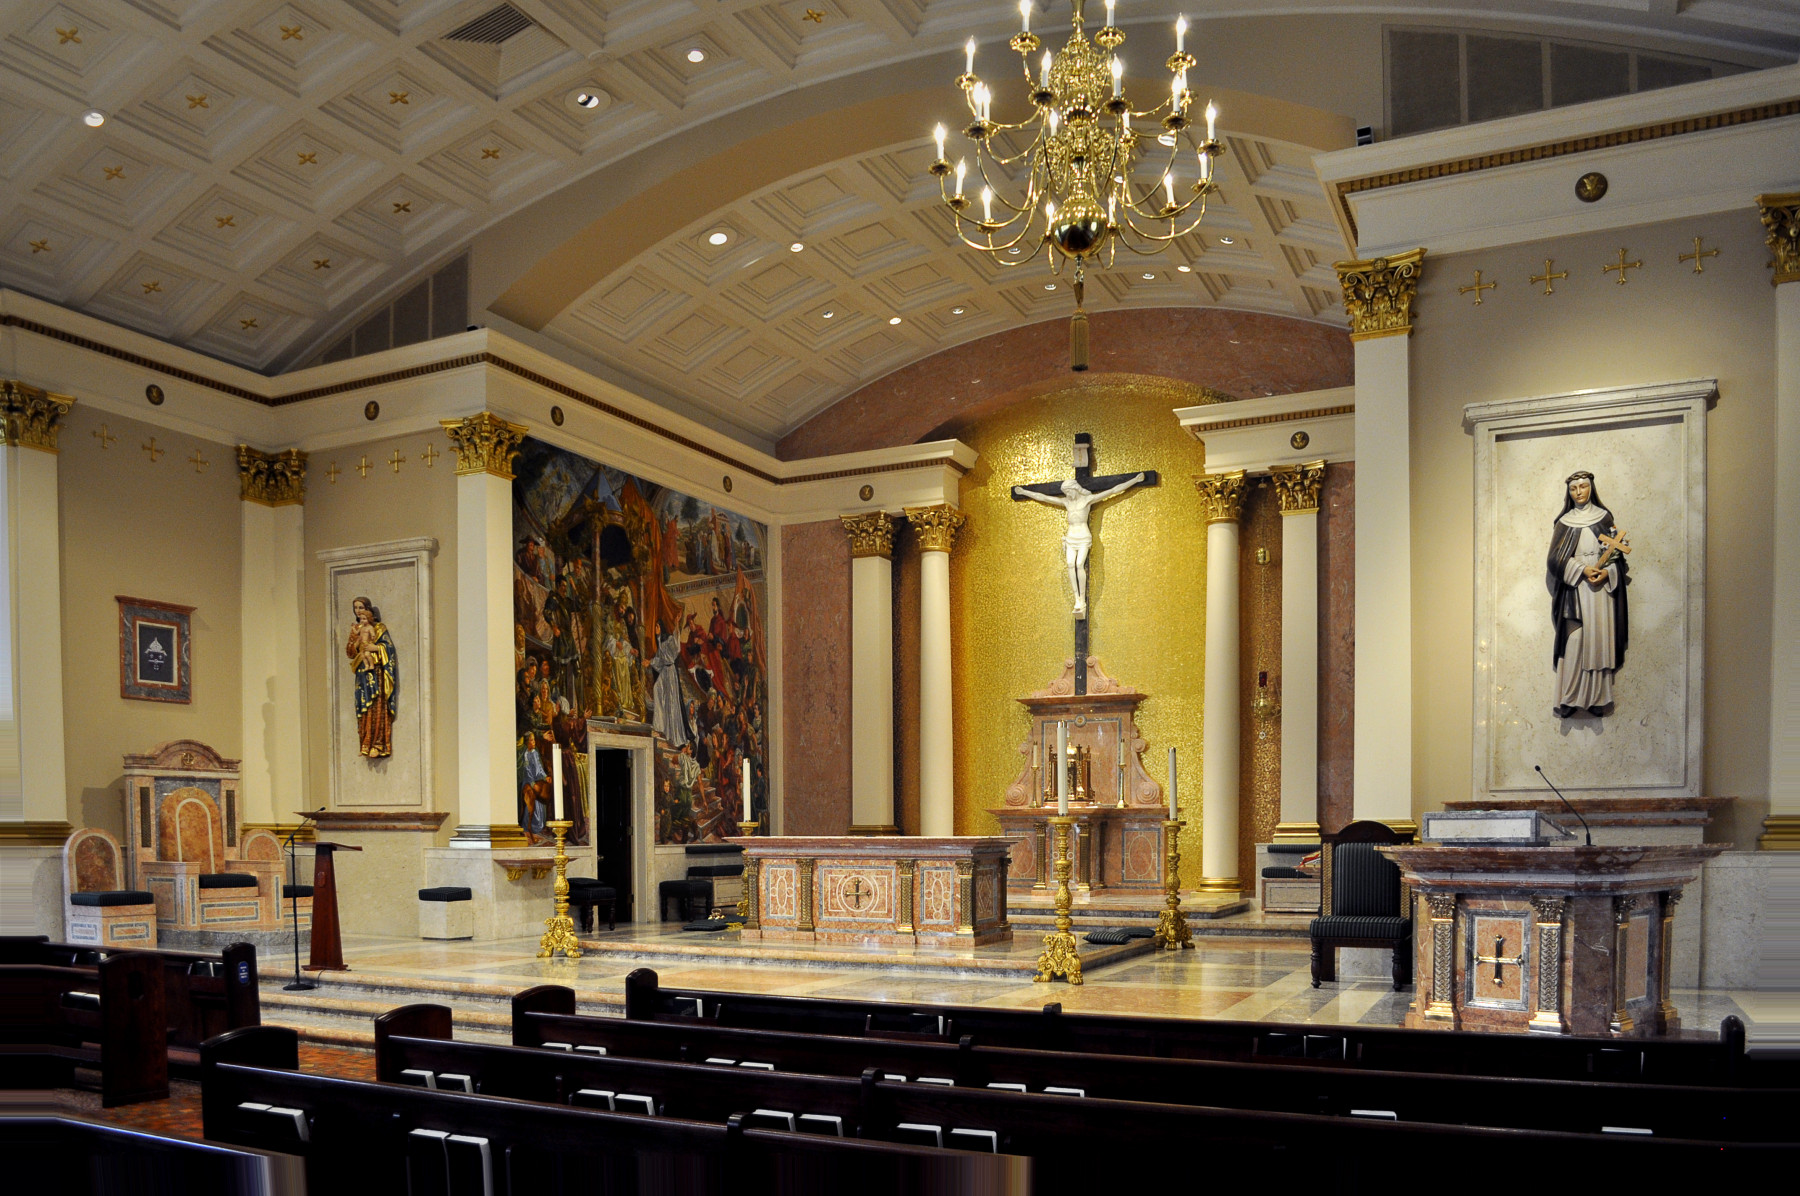 St. Catharine of Siena Allentown side back view